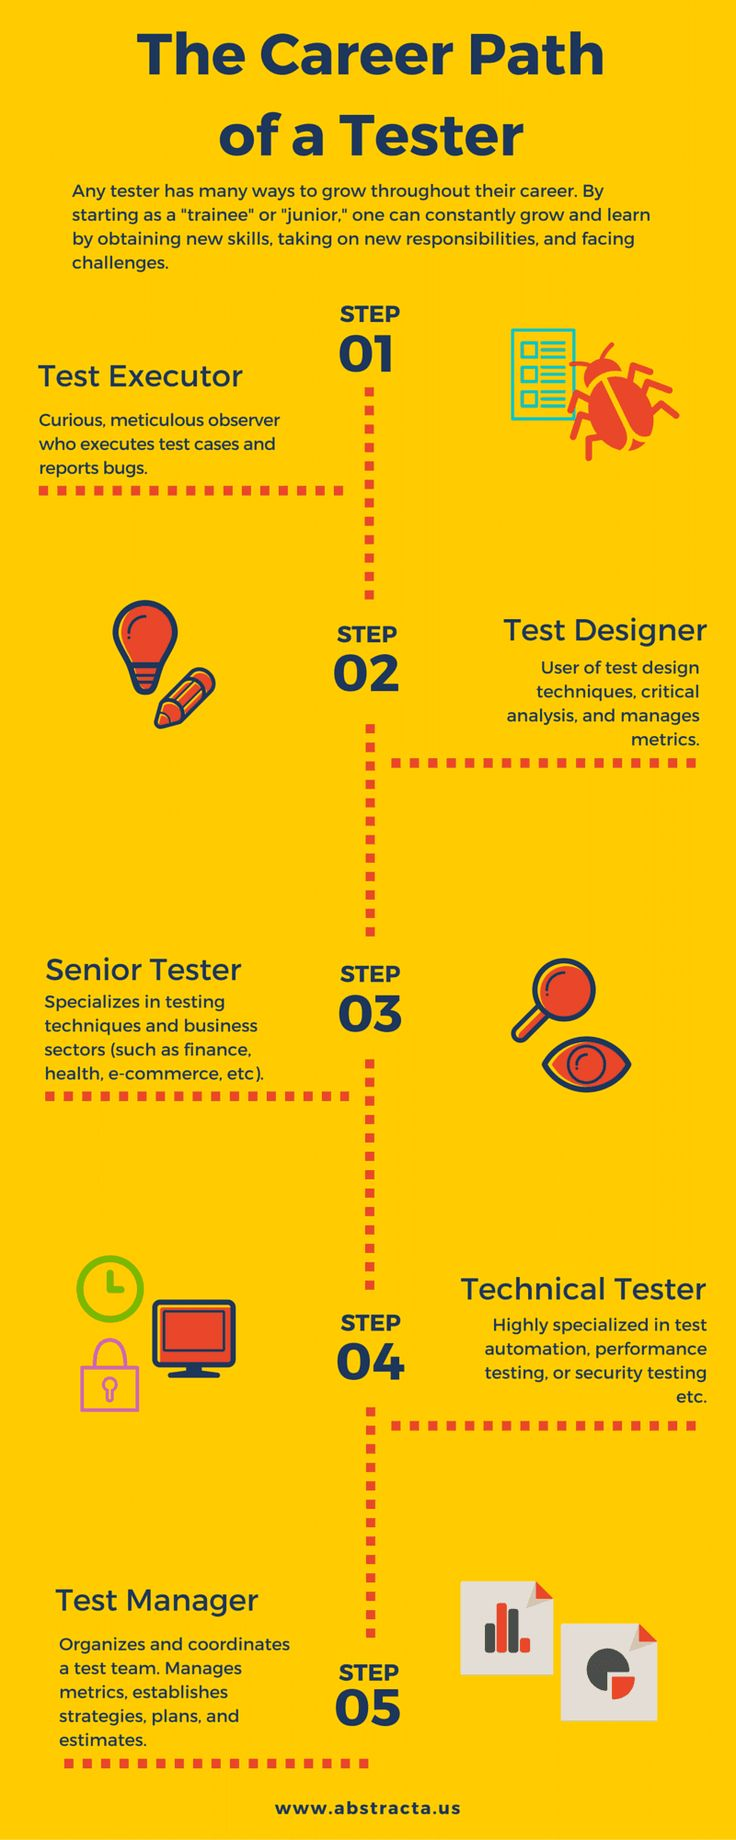 The Career Path of a Software Tester Blog and Infographic by Abstracta http://abstracta.us/2015/11/09/career-path-software-tester-infograhic/